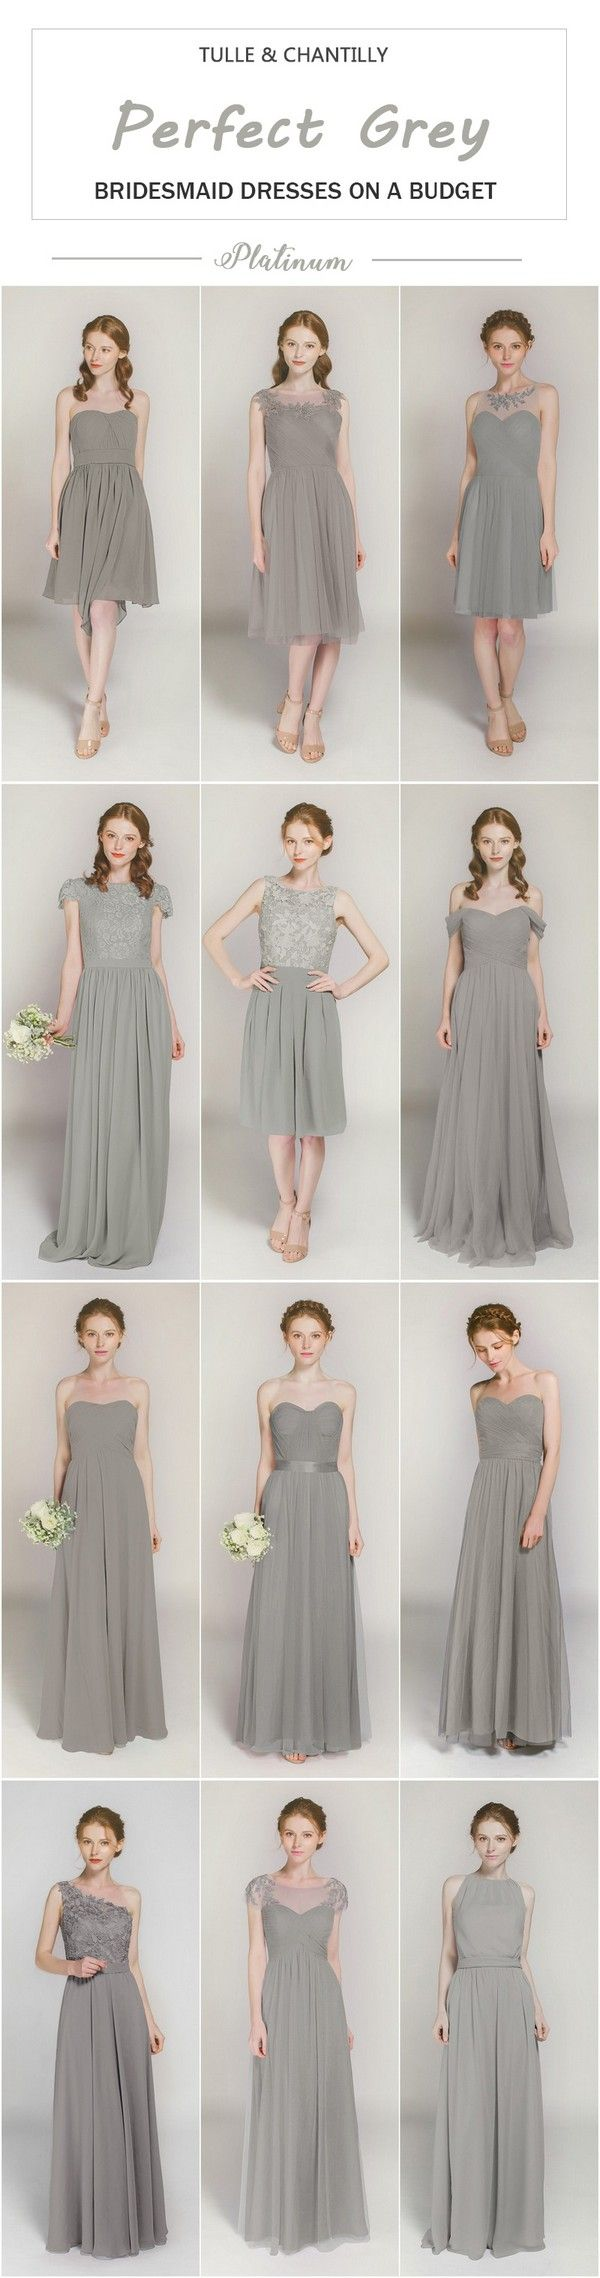 Platinum bridesmaid dresses on a budget from tulle and chantilly